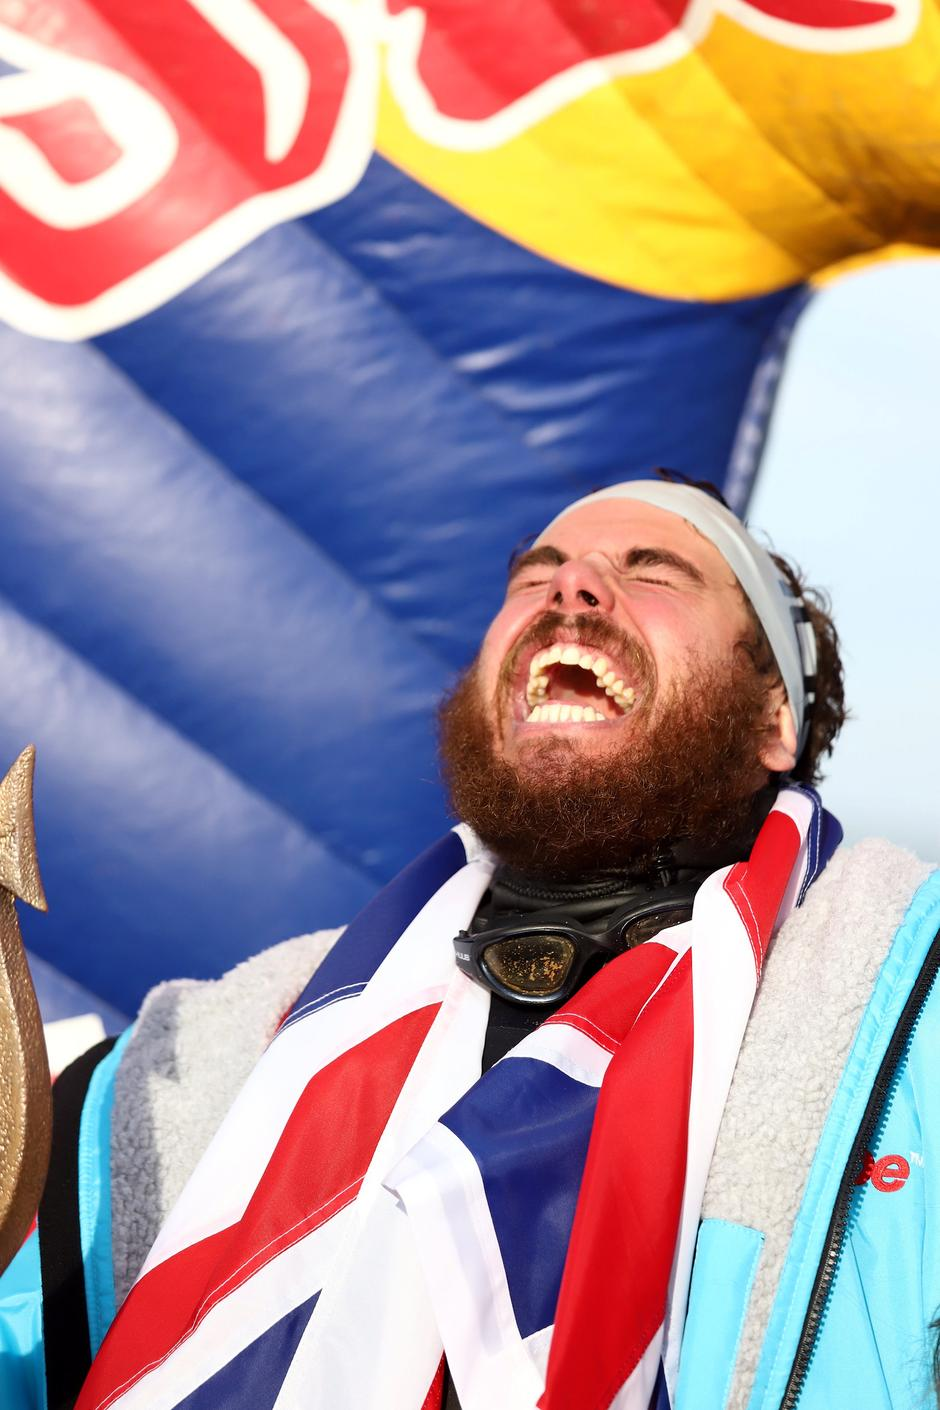 Swimmer Ross Edgley reacts after completing his round Britain swim, on Margate beach | Autor: STRINGER/REUTERS/PIXSELL/REUTERS/PIXSELL